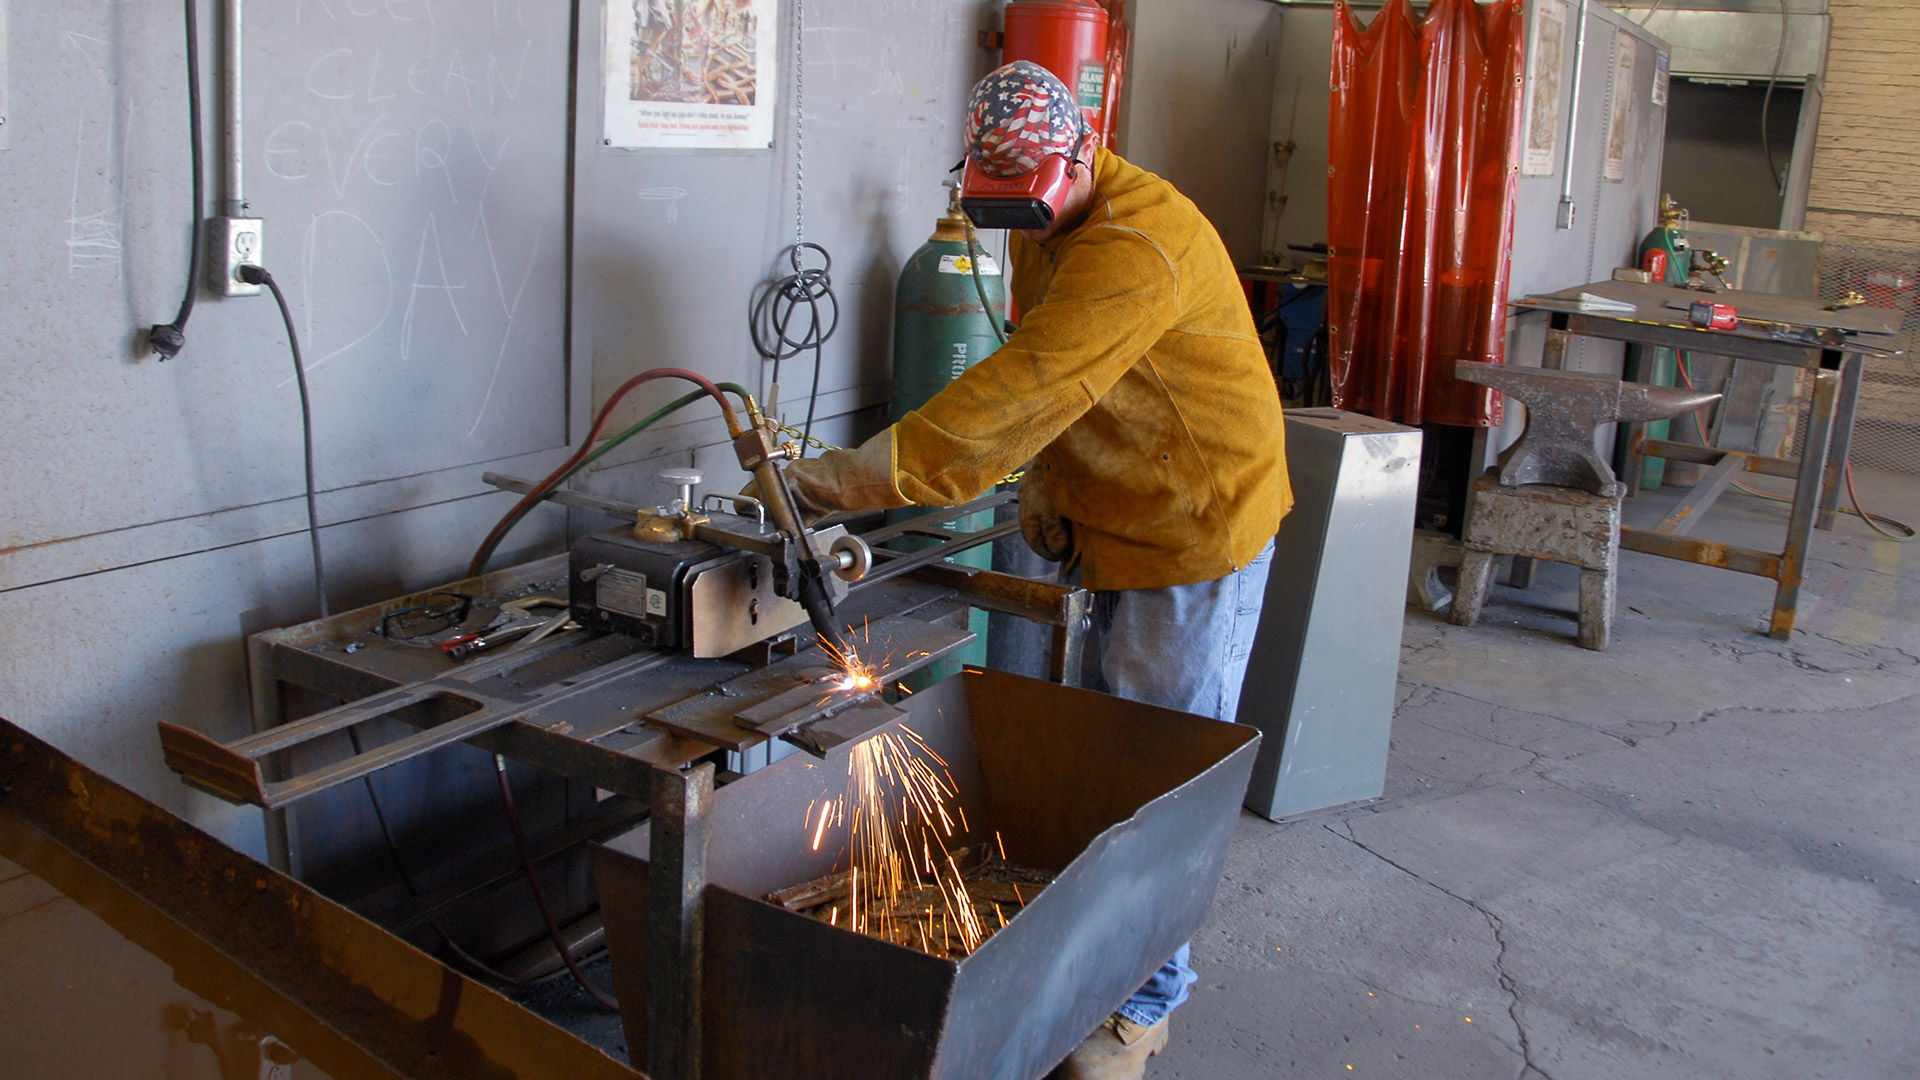 Welding student practices cutting metal in workshop with sparks flowing